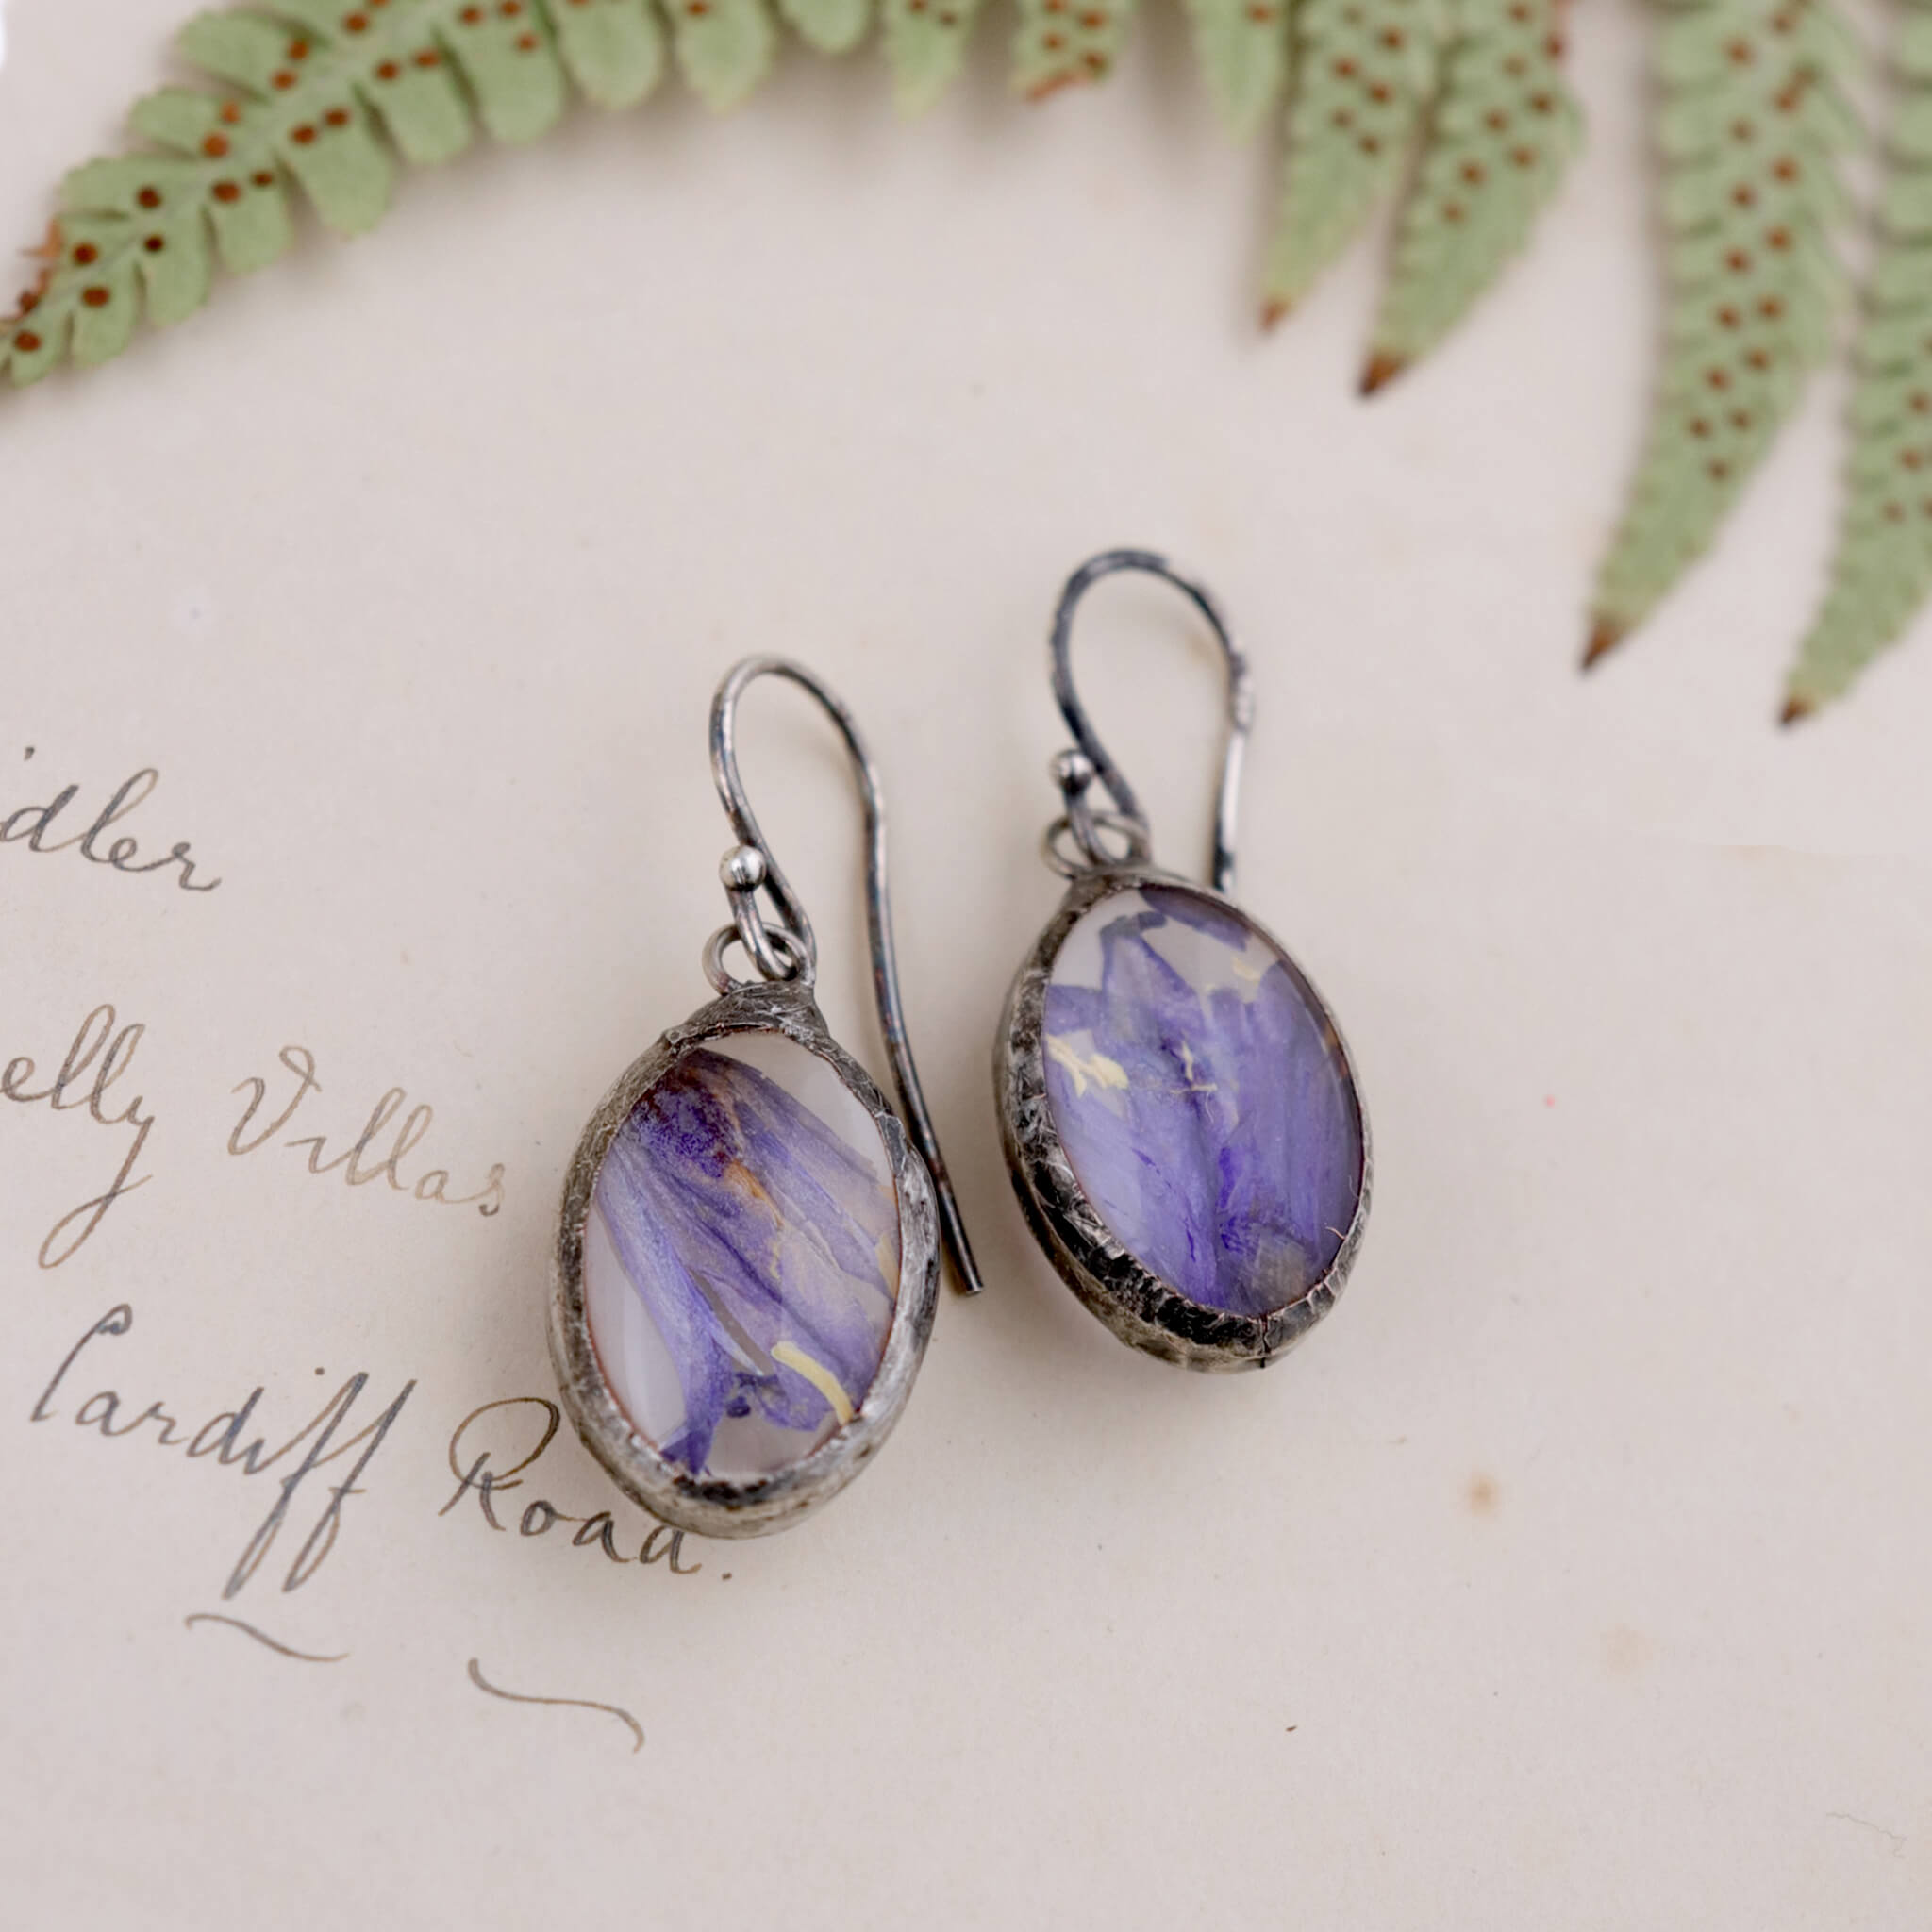 Pressed bluebells earrings in tiffany style lying flat on a vintage papery